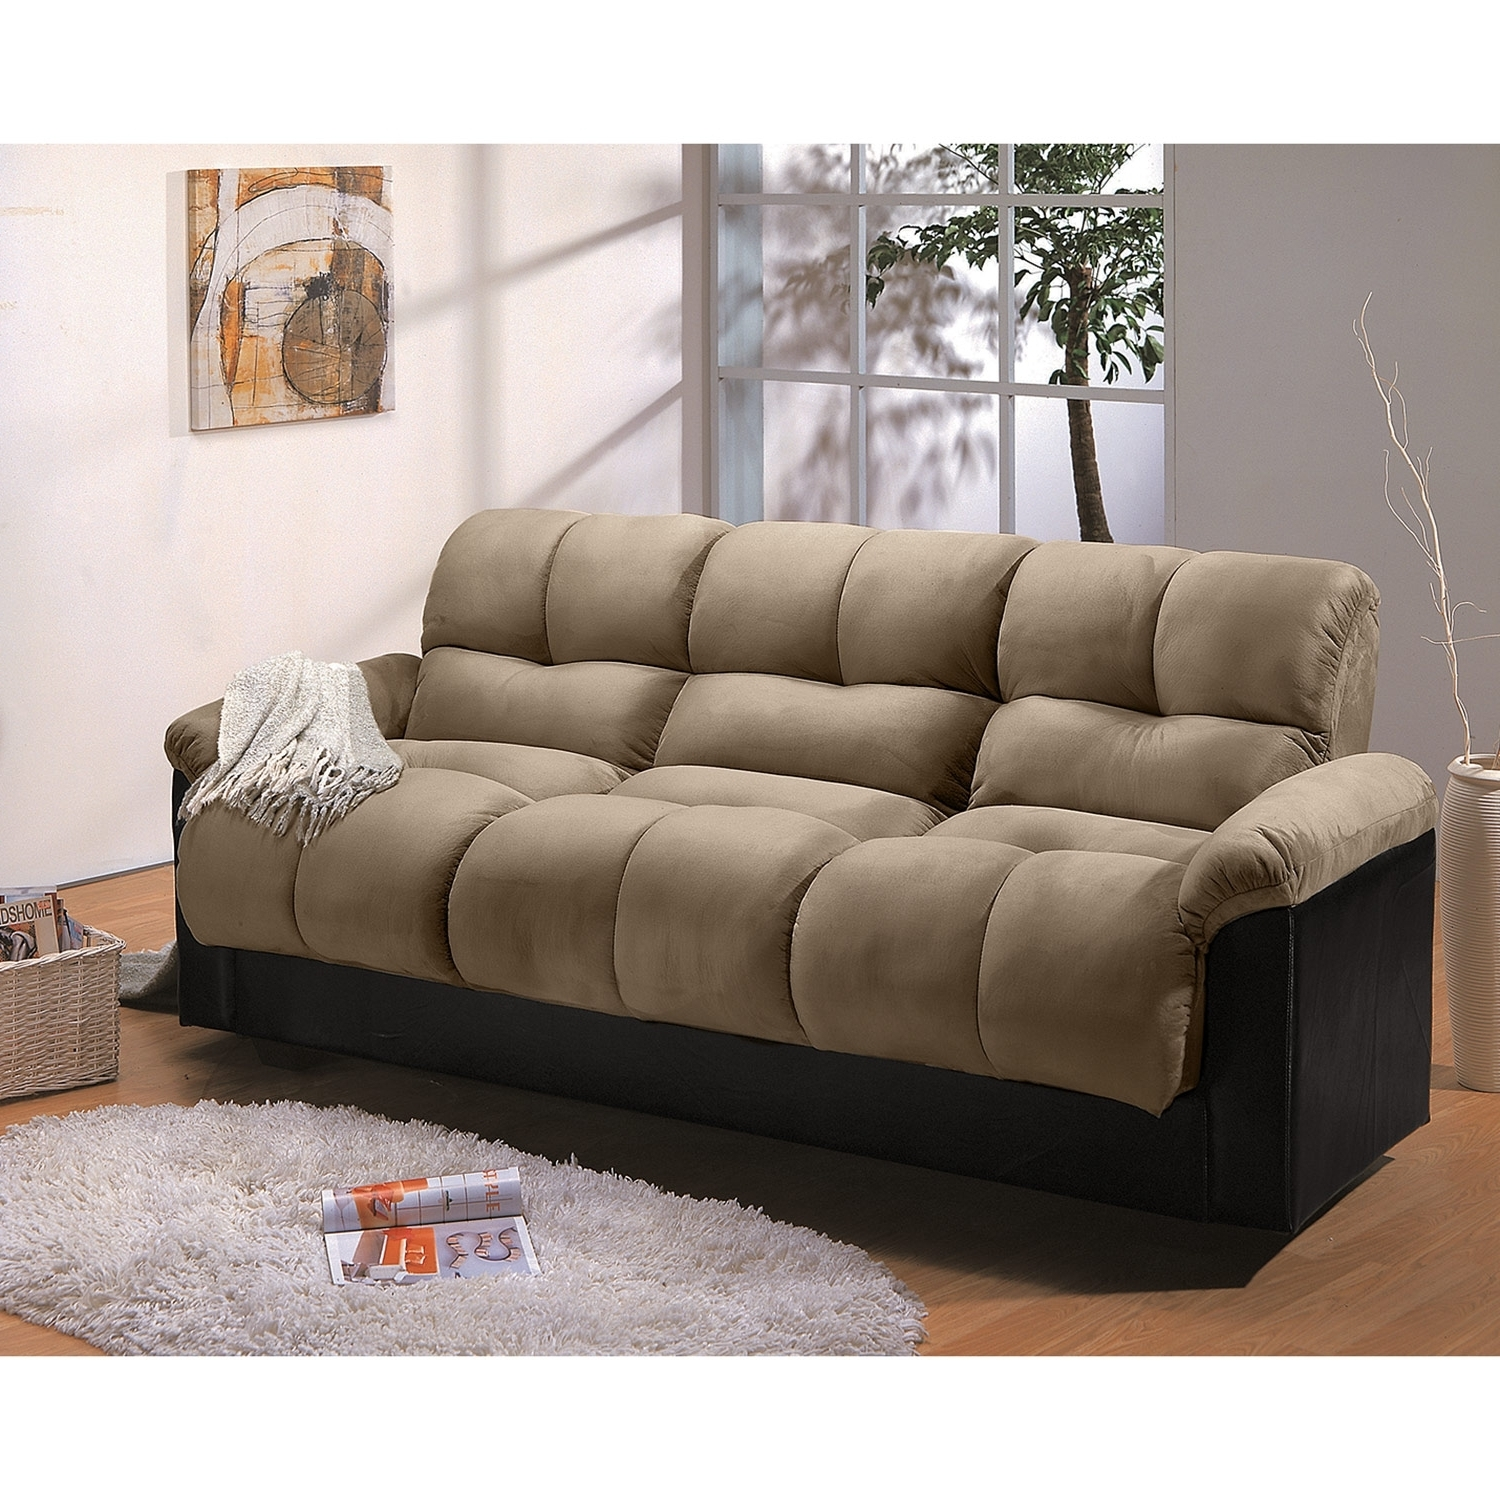 Popular Sofa Futon Beds Ikea : Roof, Fence & Futons – Futon Beds Ikea Throughout City Sofa Beds (View 18 of 20)